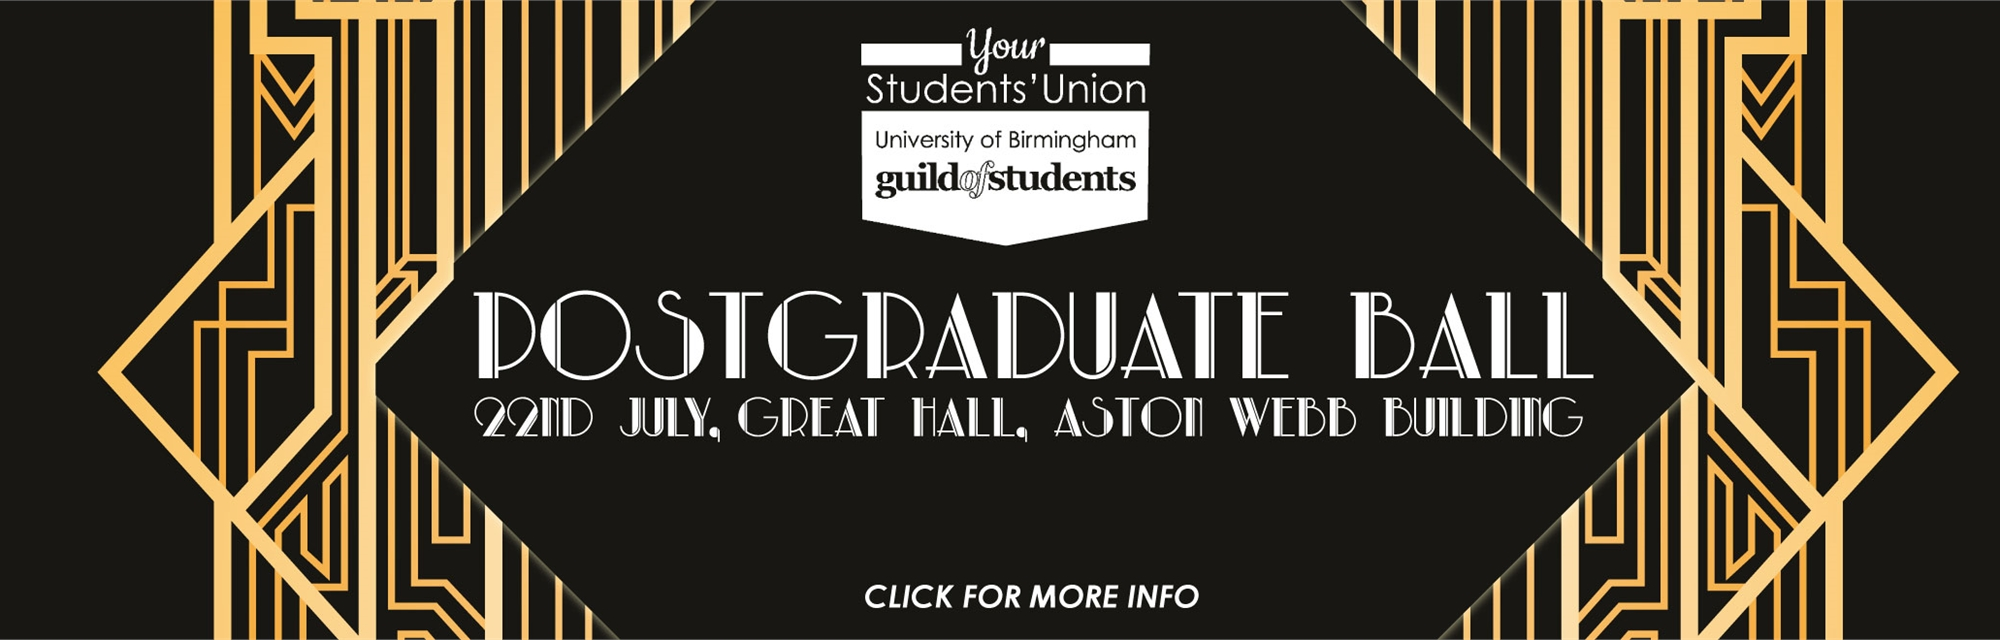 postgraduate ball - 22nd July - Great Hall, Aston Webb Building - Click here to purchase tickets